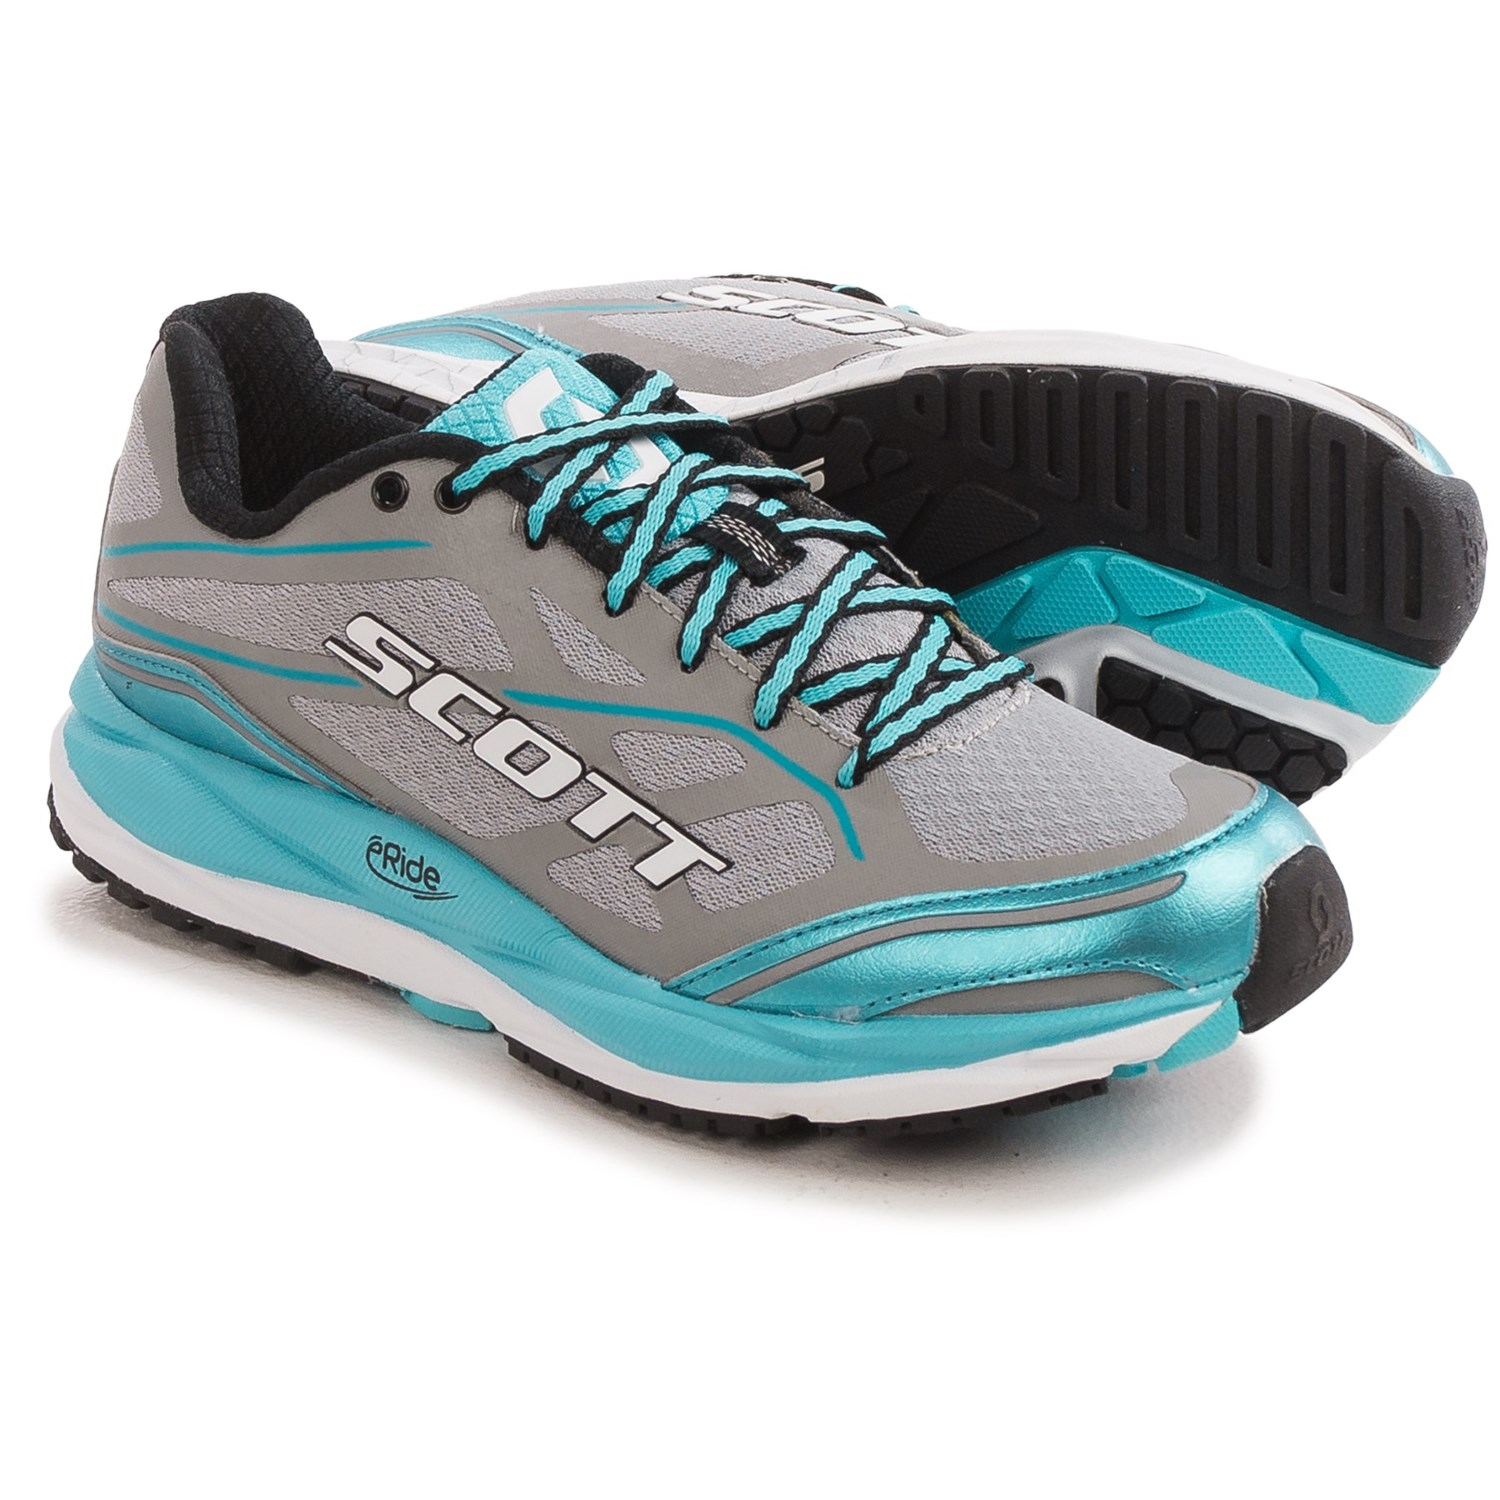 Karrimor Excel  Support Mens Running Shoes Review